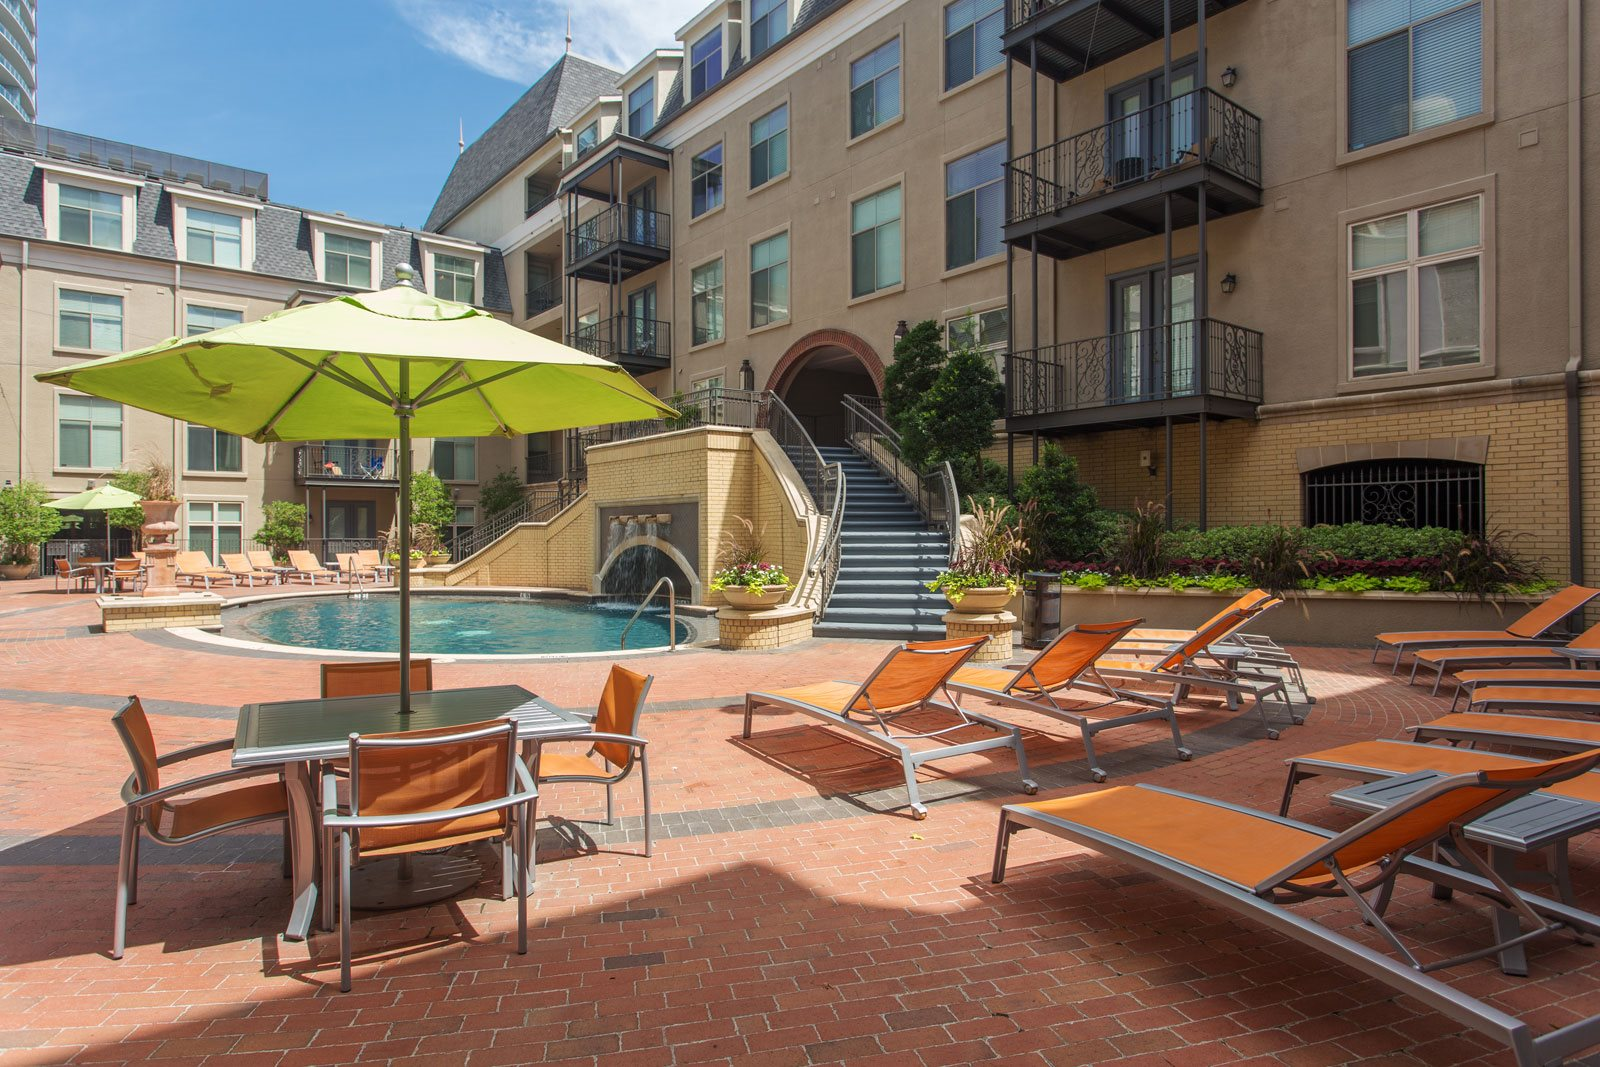 Pool with Sundeck and Lounge Chairs at Trianon by Windsor, 75201, Texas